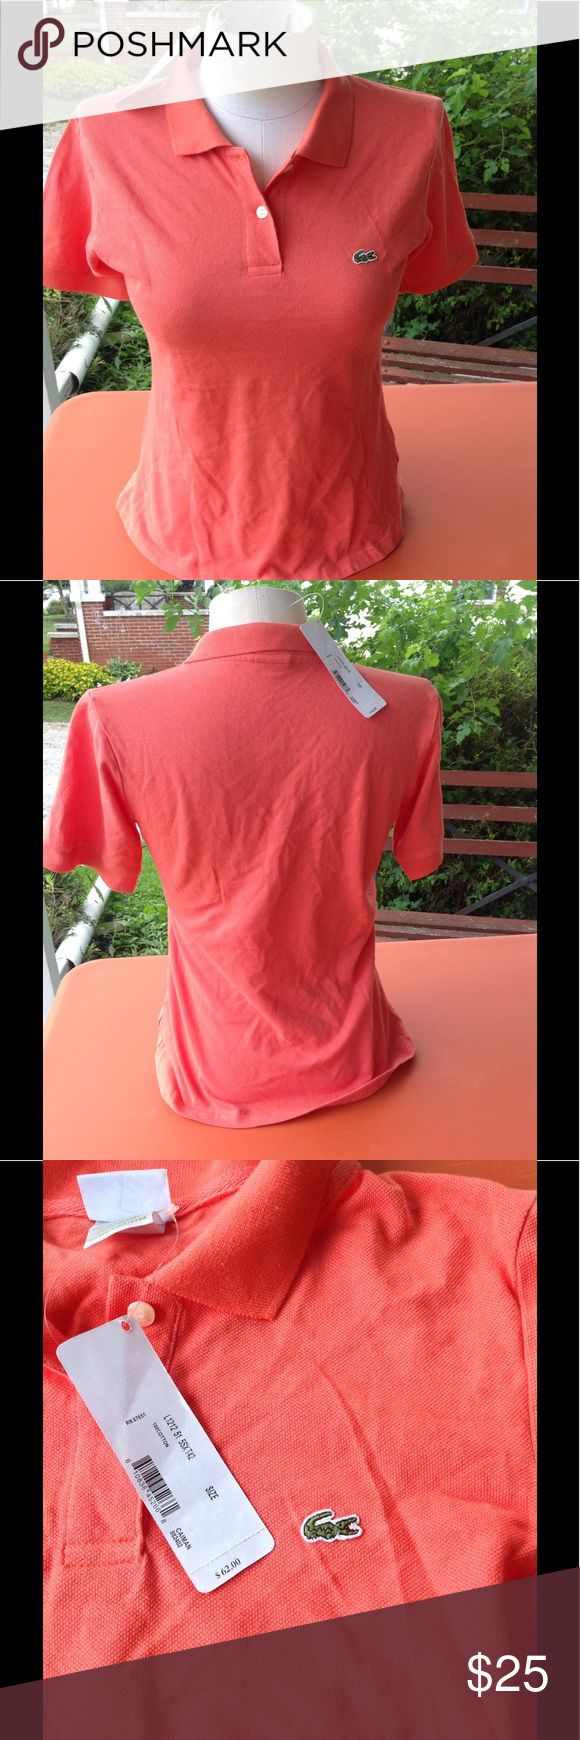 Brand new womans lacoste shirt. It is a size2, color is bright orange, brand new with a tag of 62.00, sale is final i do not accept returns. Lacoste Tops Tees - Short Sleeve